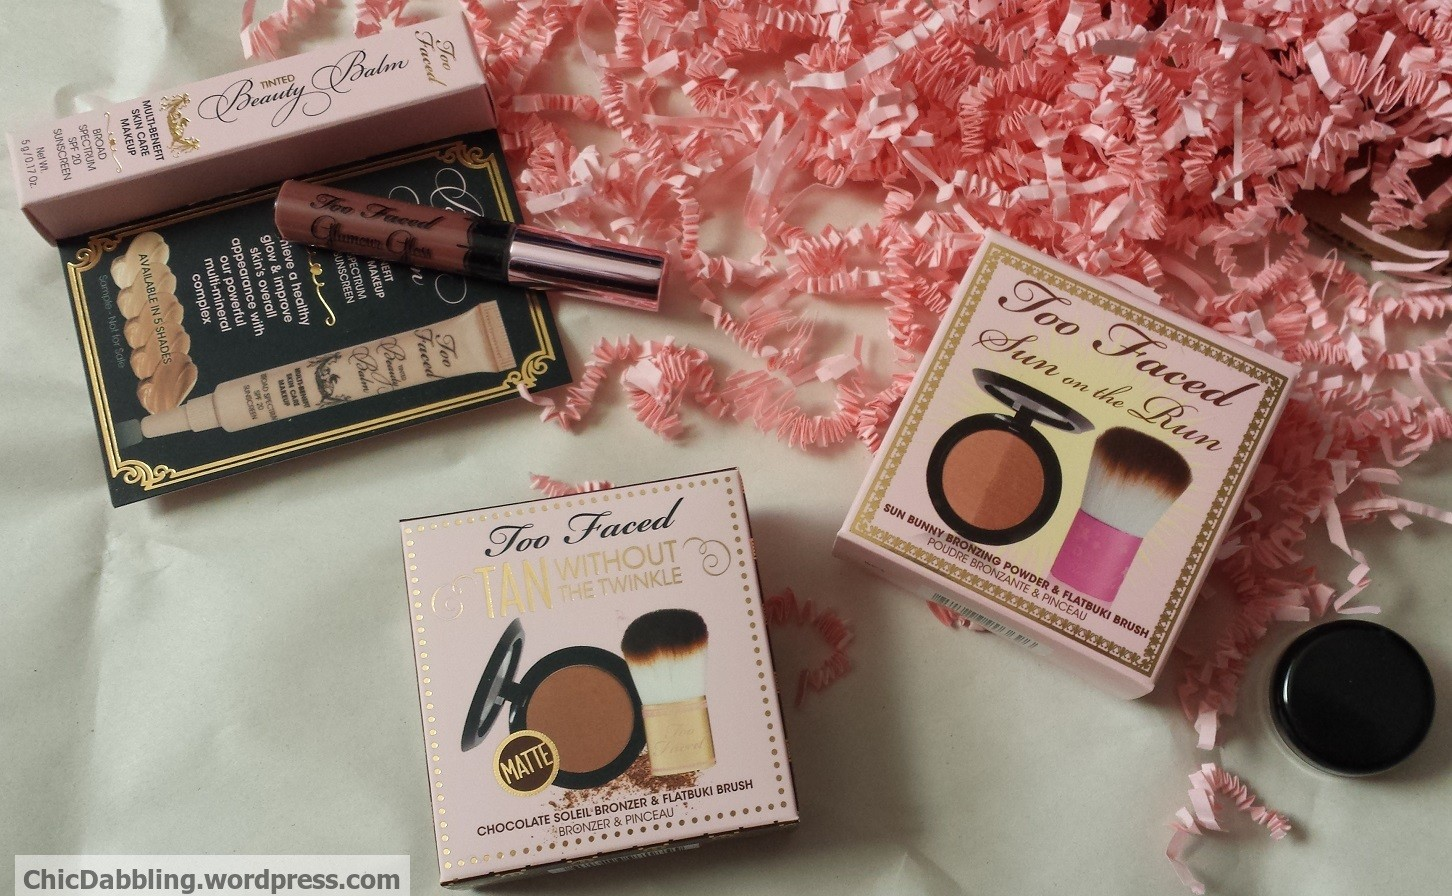 Too Faced (and other) bronzer swatches | Chic Dabbling